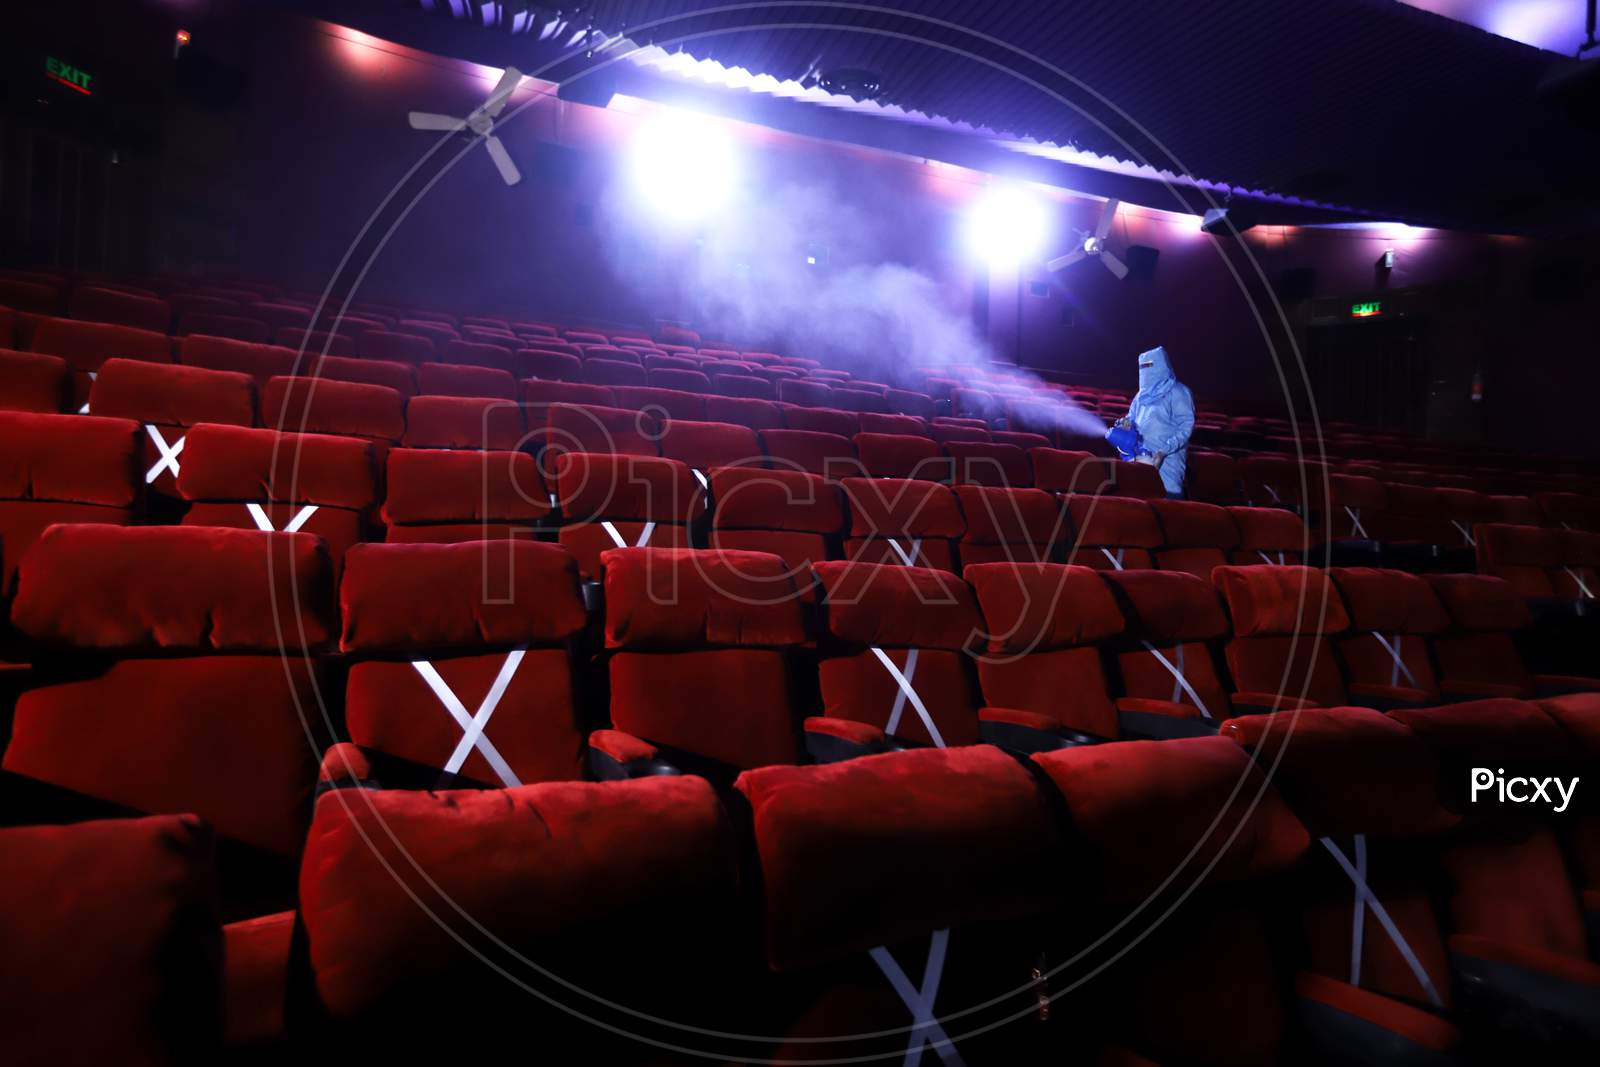 A worker sanitises inside a theatre hall ahead of the scheduled reopening of cinema theatres on October 15 as the Covid-19 coronavirus imposed lockdown eases further in New Delhi on October 13, 2020.